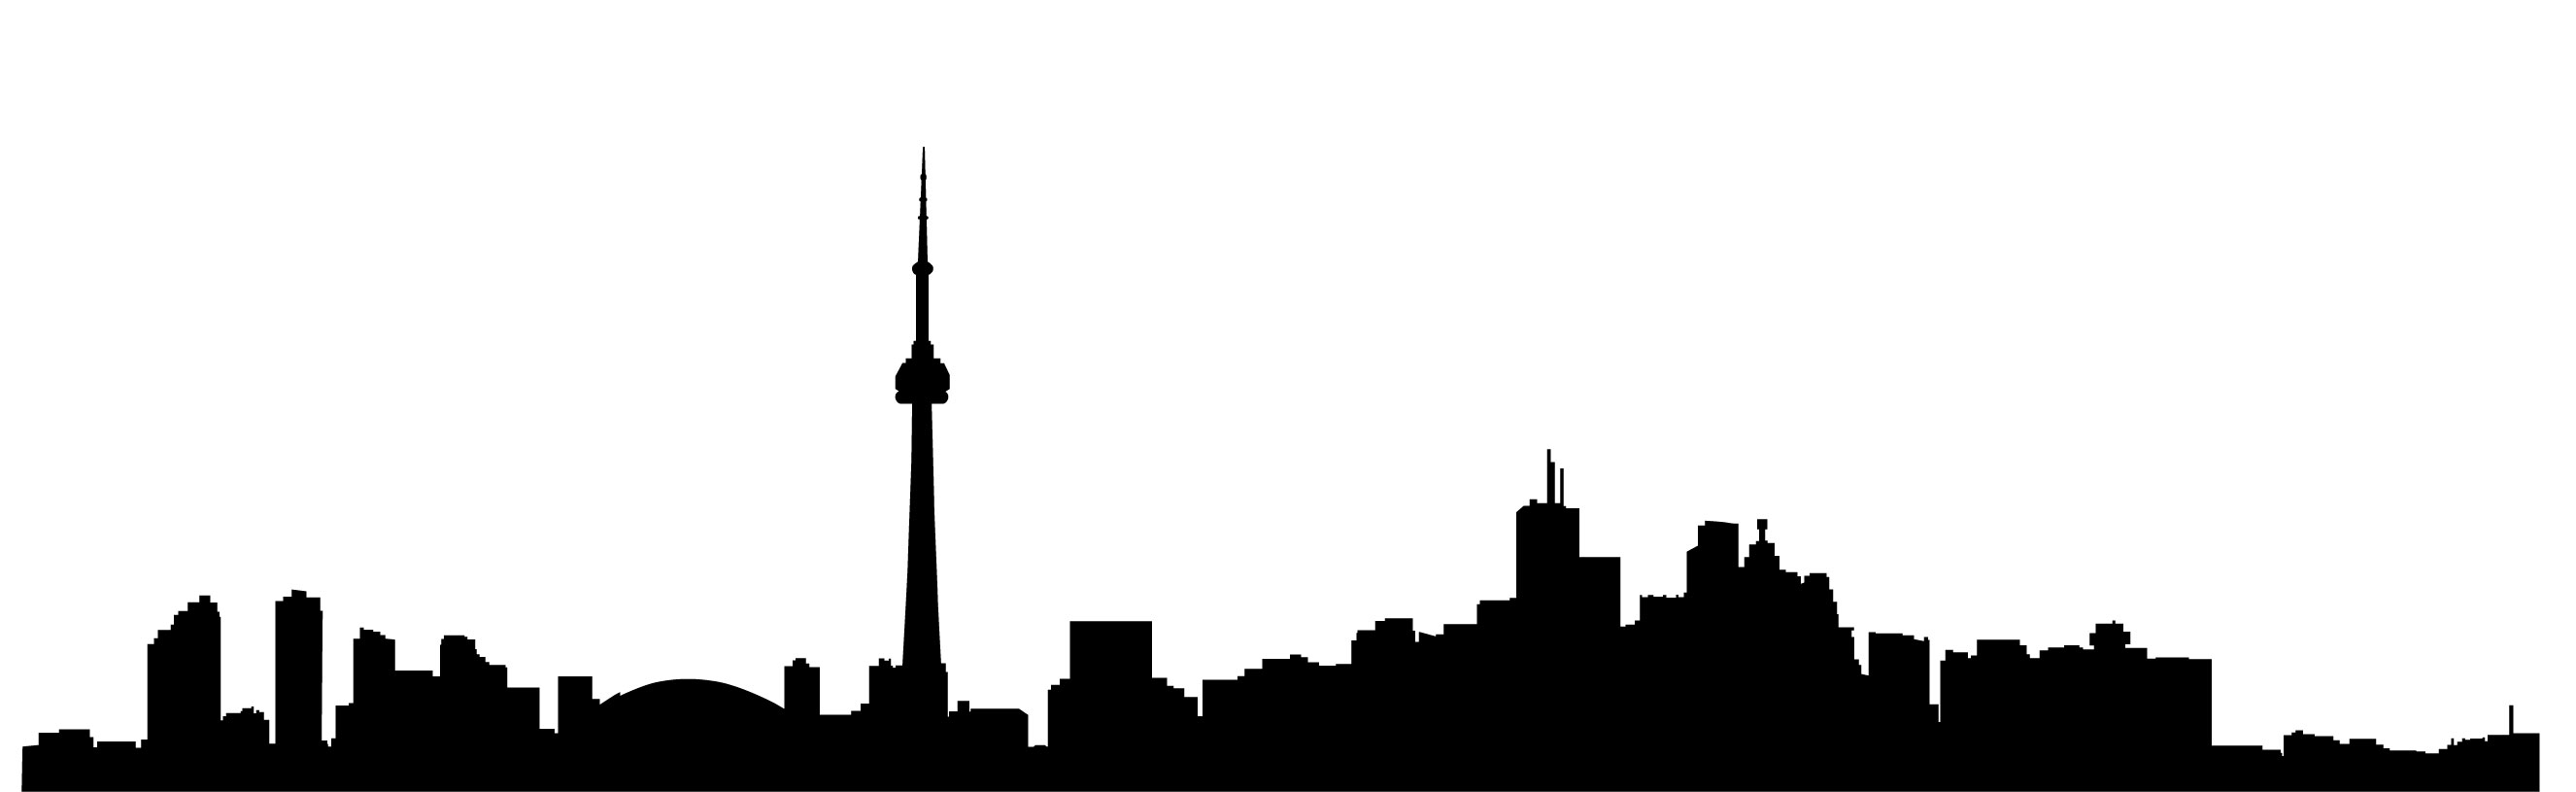 Clipart bedroom in city at night jpg free library City Skyline Silhouette Clipart | Free download best City Skyline ... jpg free library